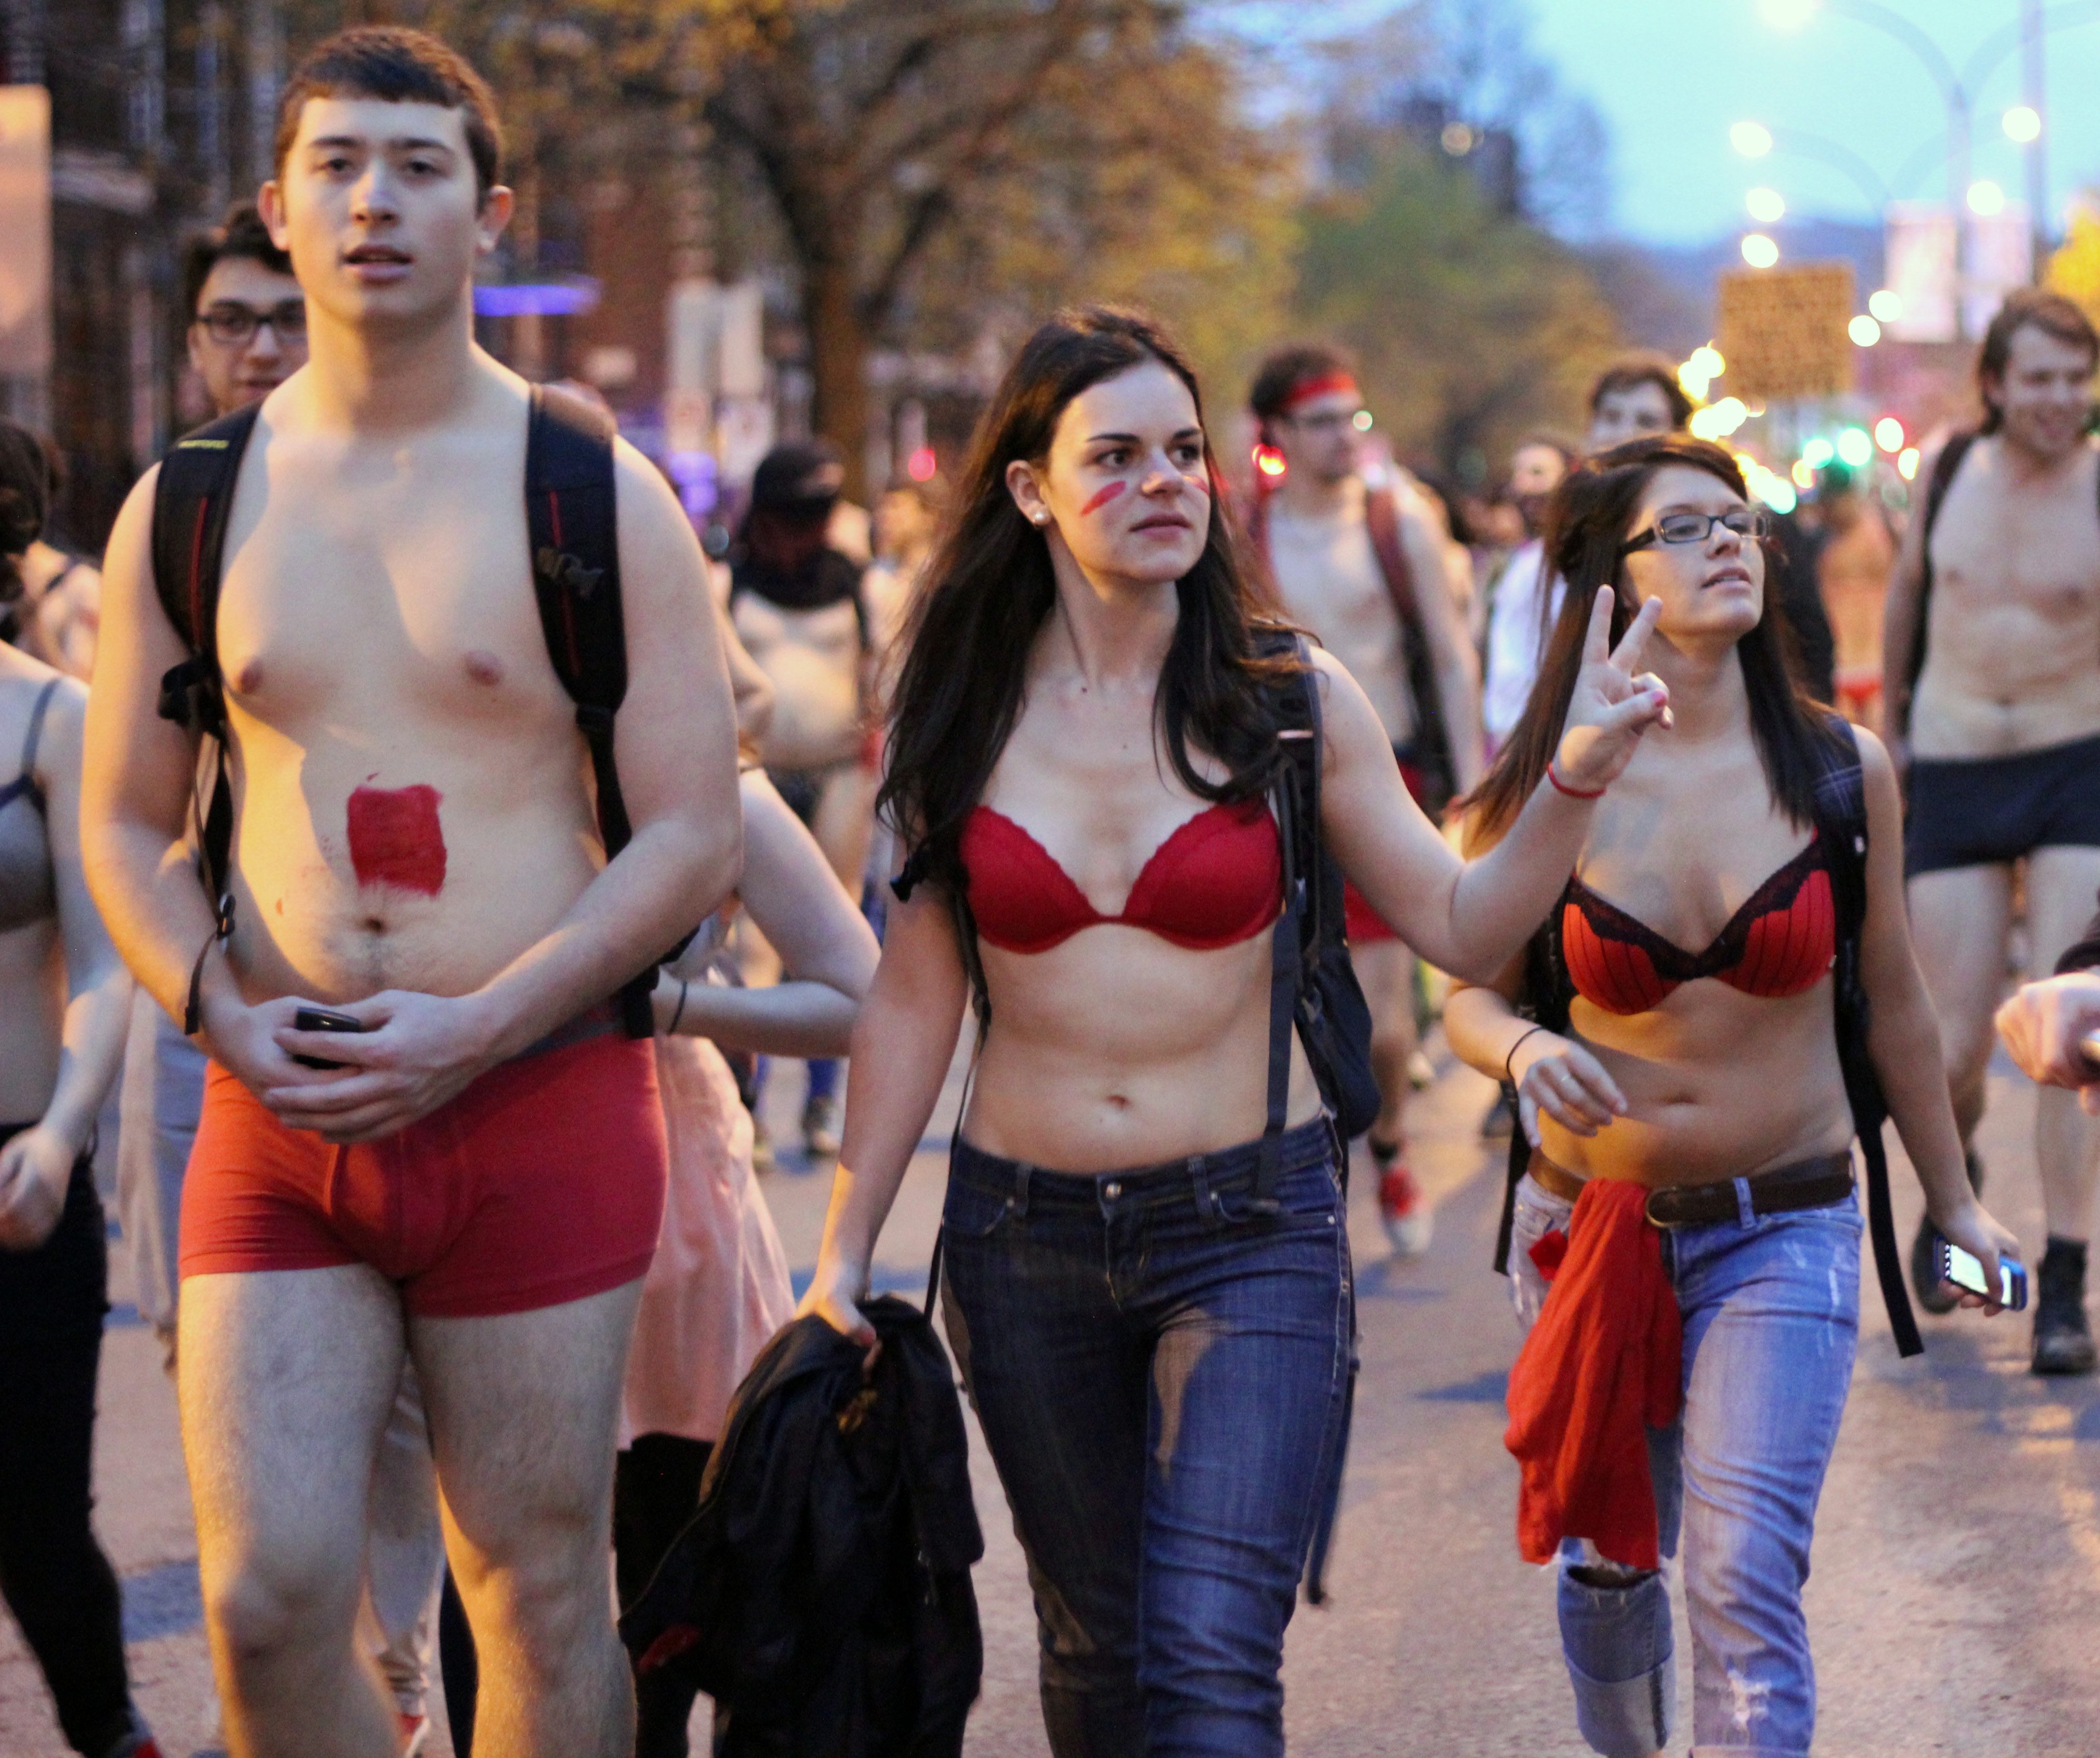 Topless demonstrators with PETA who are wearing body paint